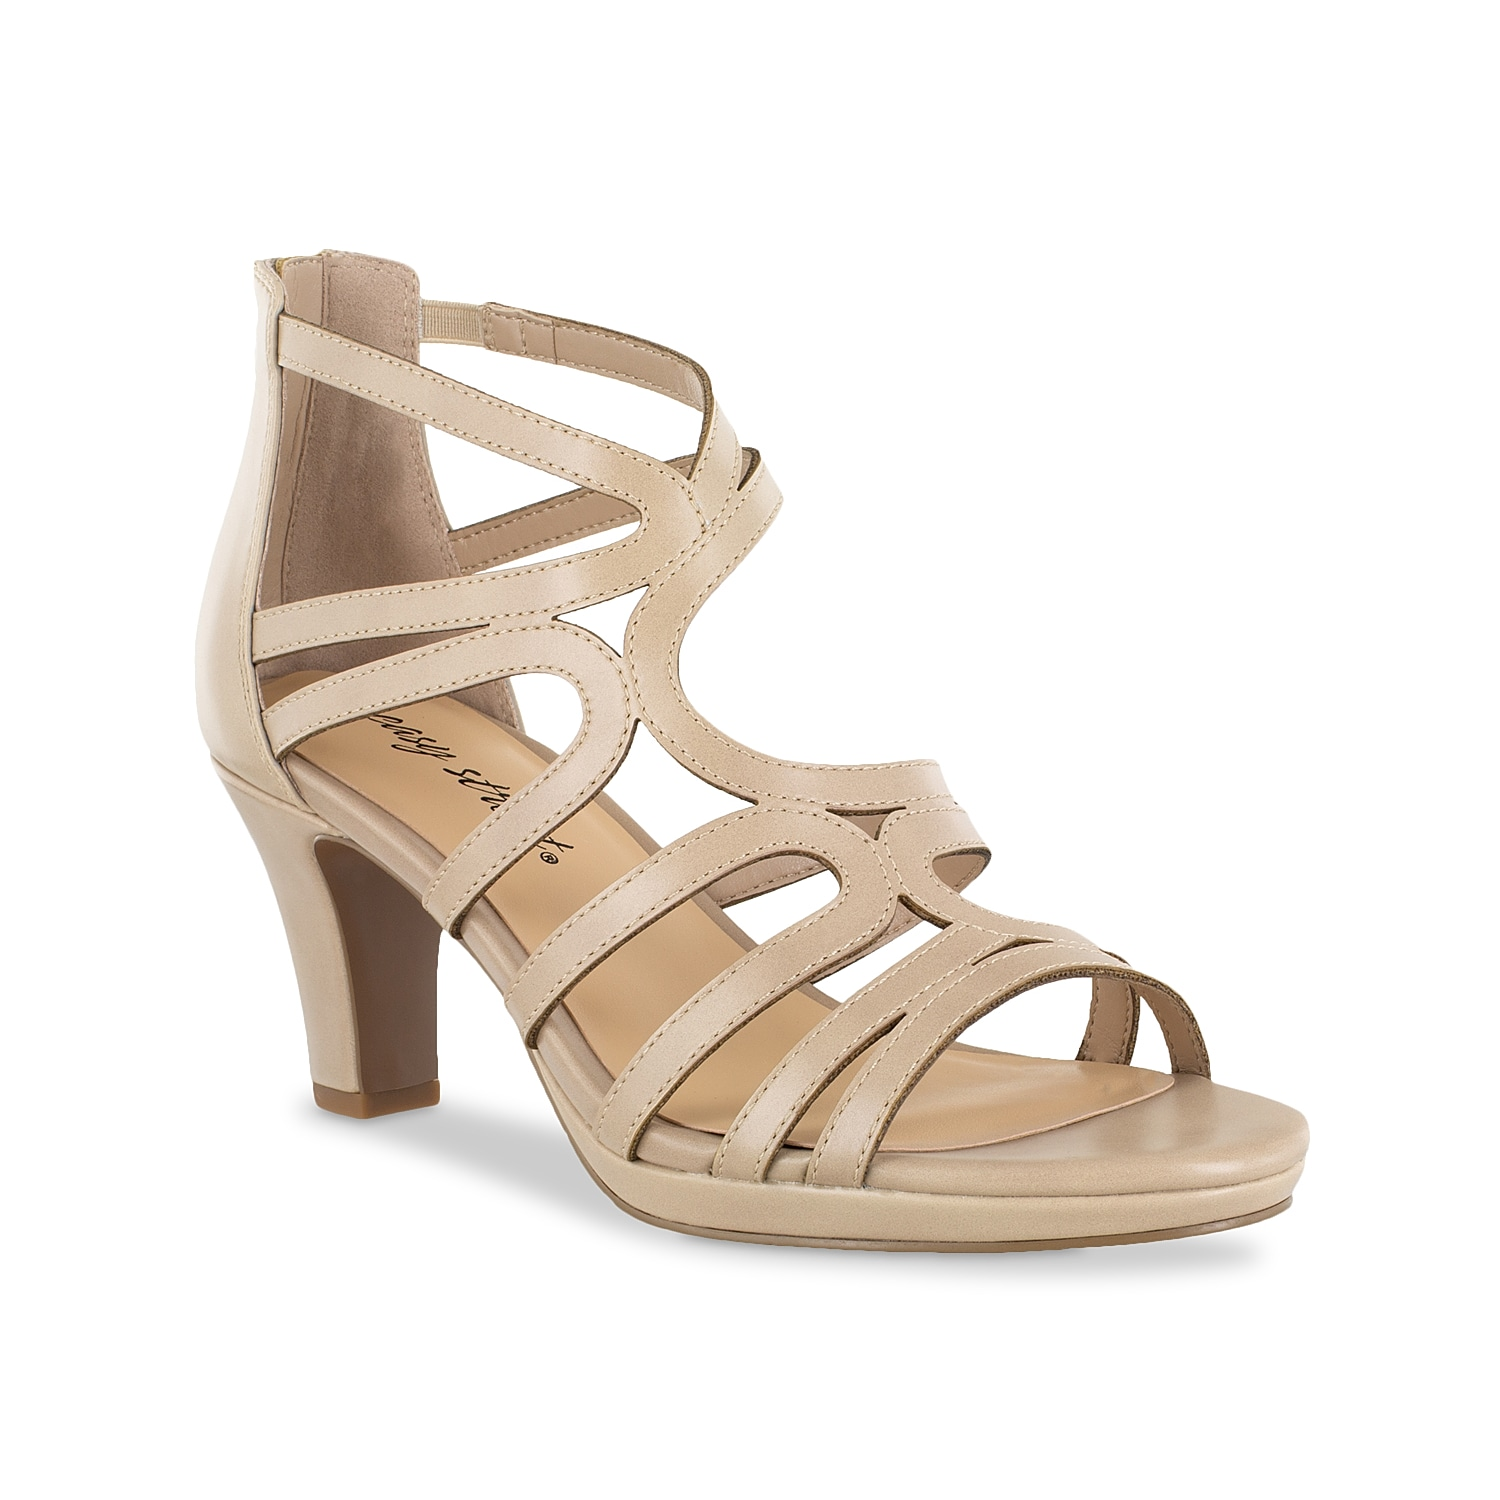 Walk the walk and talk the talk when wearing the Elated sandal from Easy Street. This silhouette is fashioned with a strappy upper and a back zipper closure for easy on-and-offs!